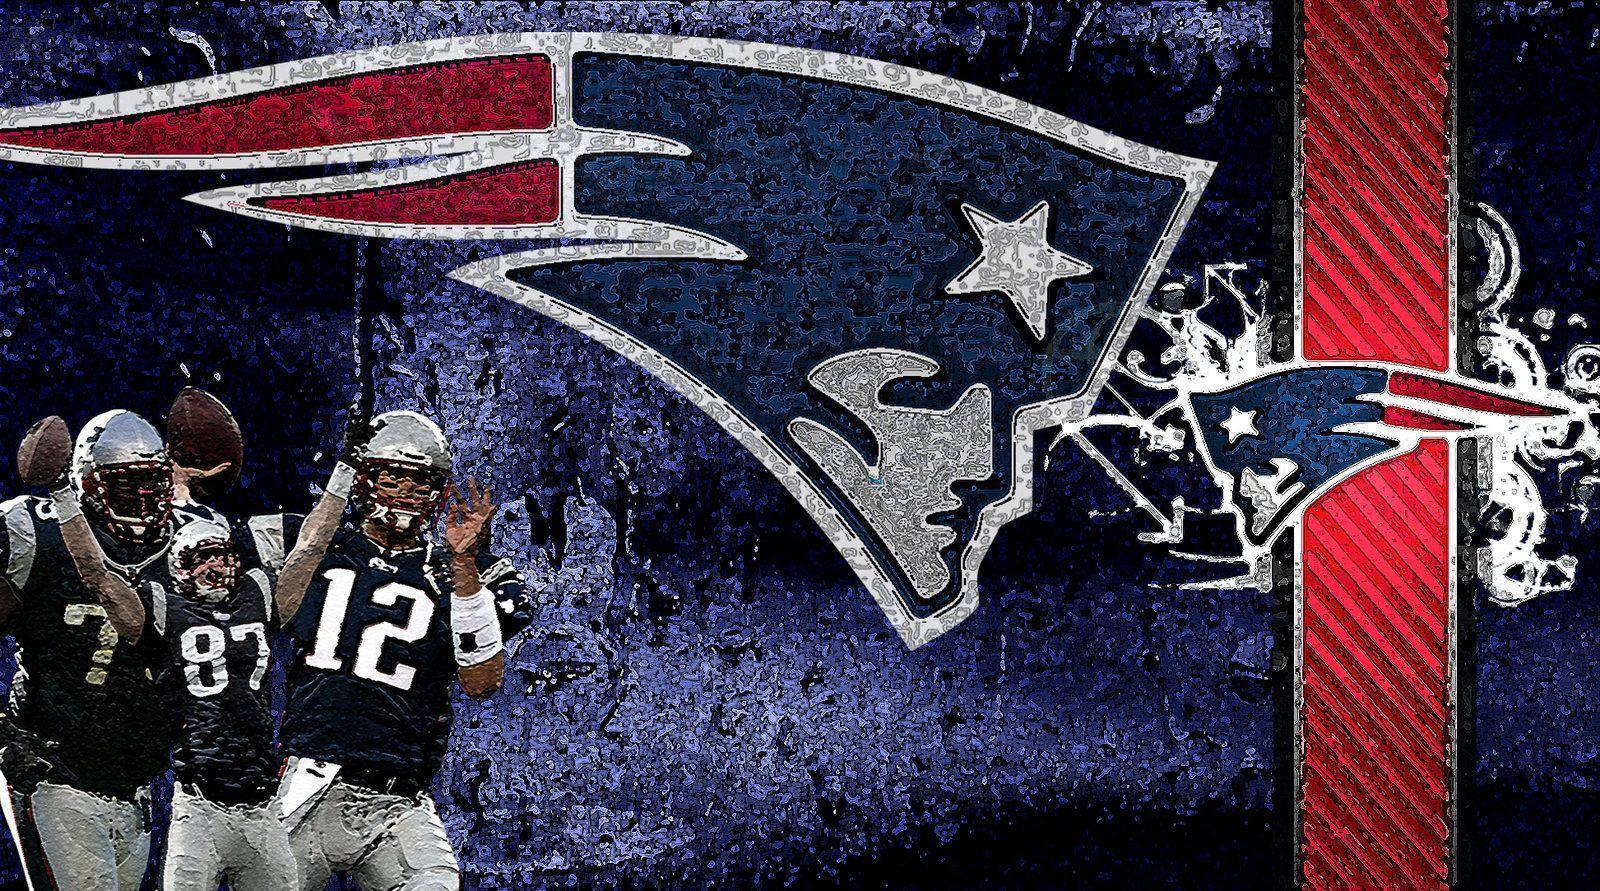 New England Patriots wallpapers HD backgrounds download desktop